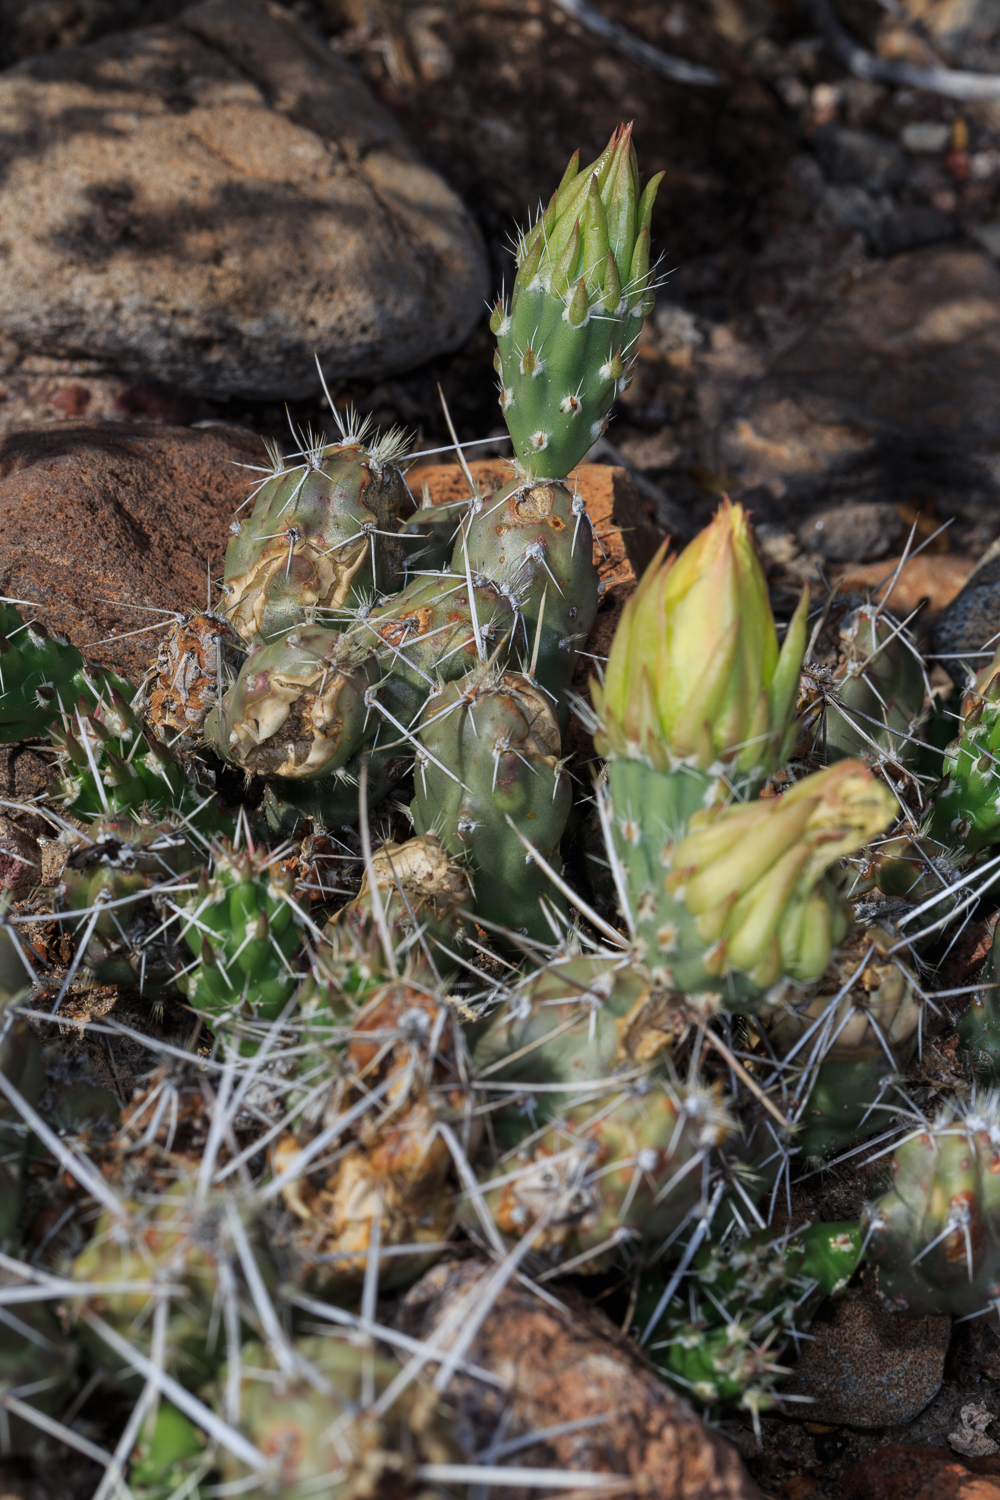 Brown-Spined Pricly Pear - Big Bend NP / Castelon